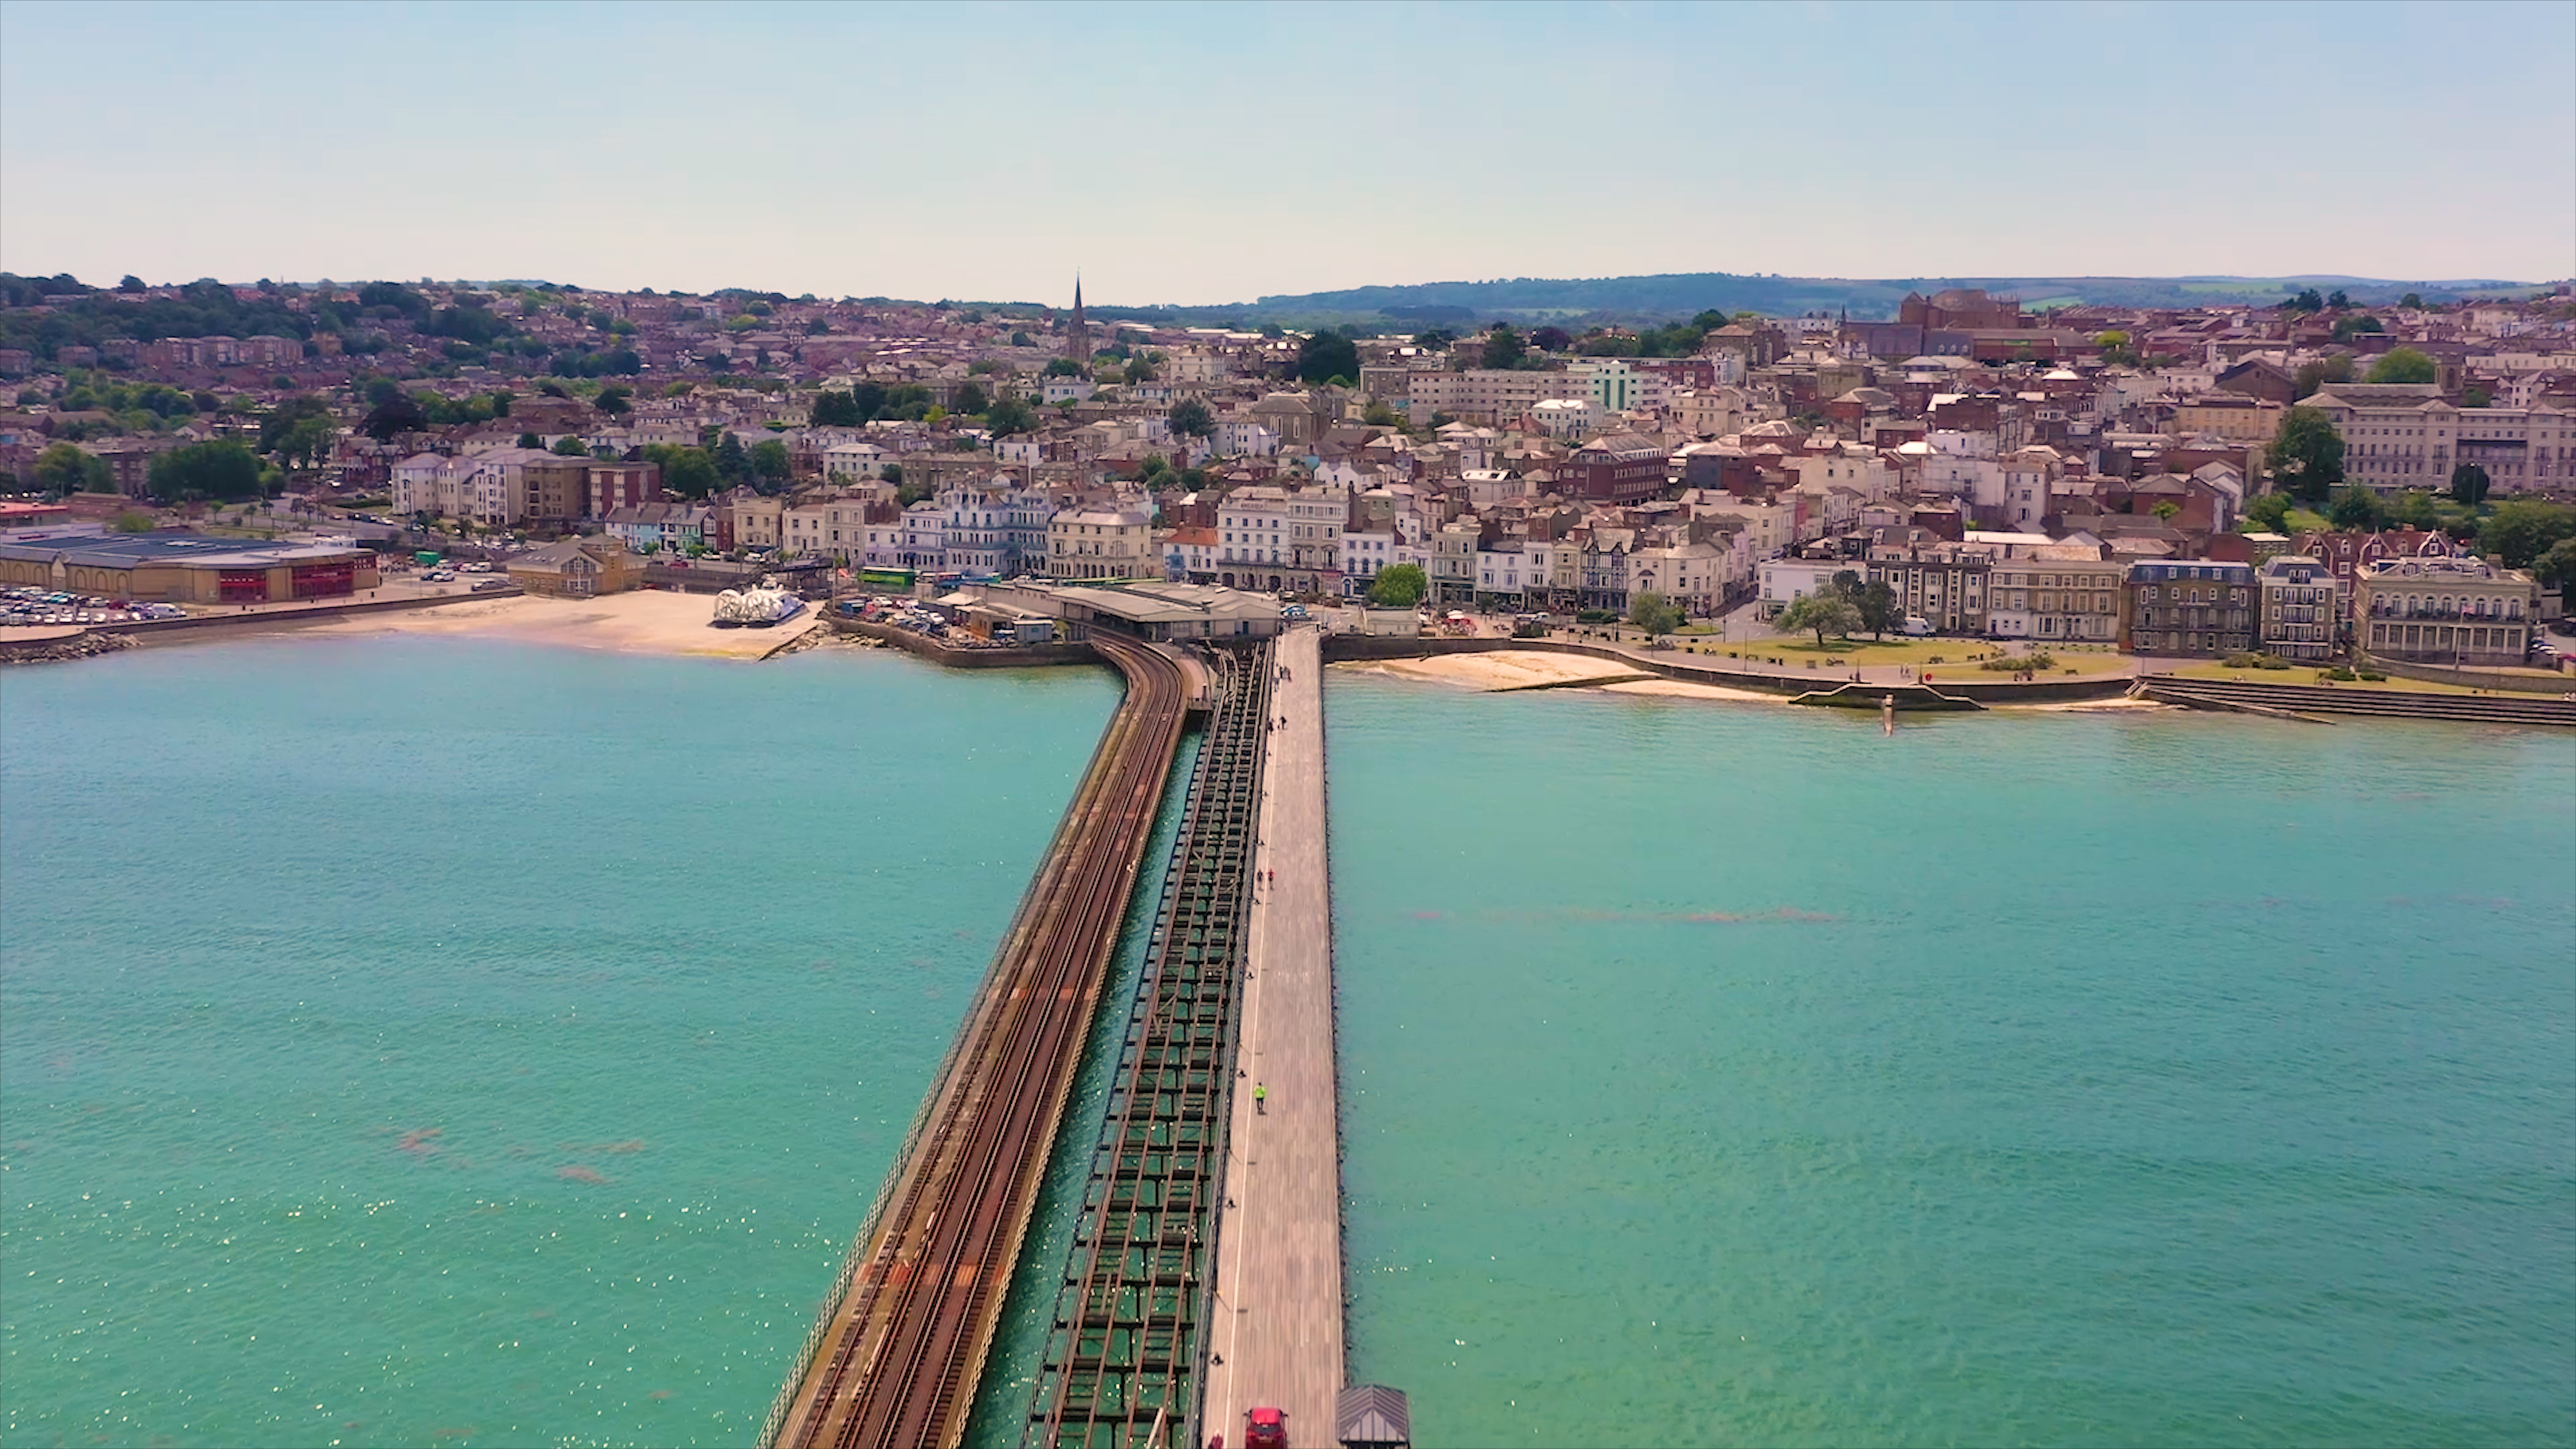 Aerial view of Ryde Pier and Ryde, Isle of Wight